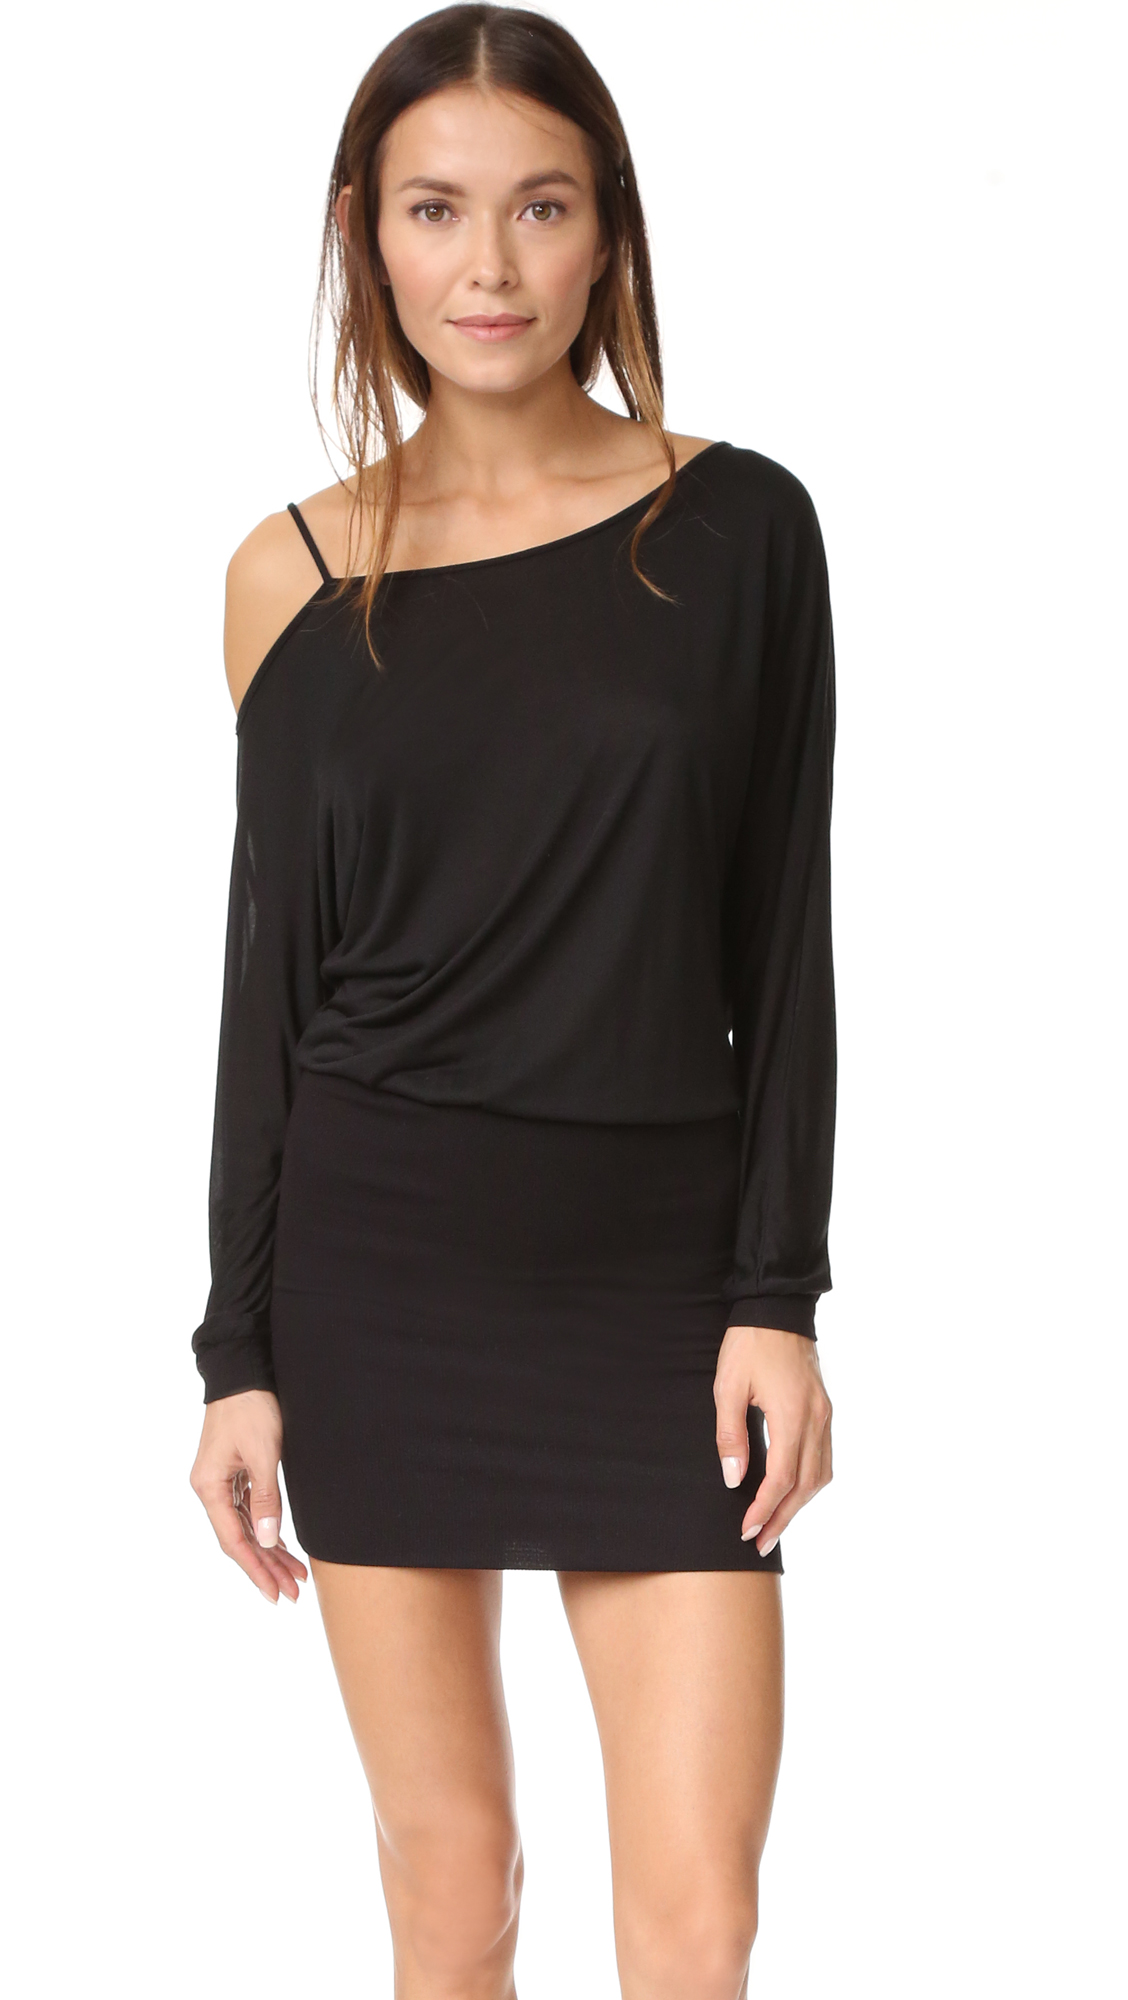 Lanston Off The Shoulder Mini Dress - Black at Shopbop